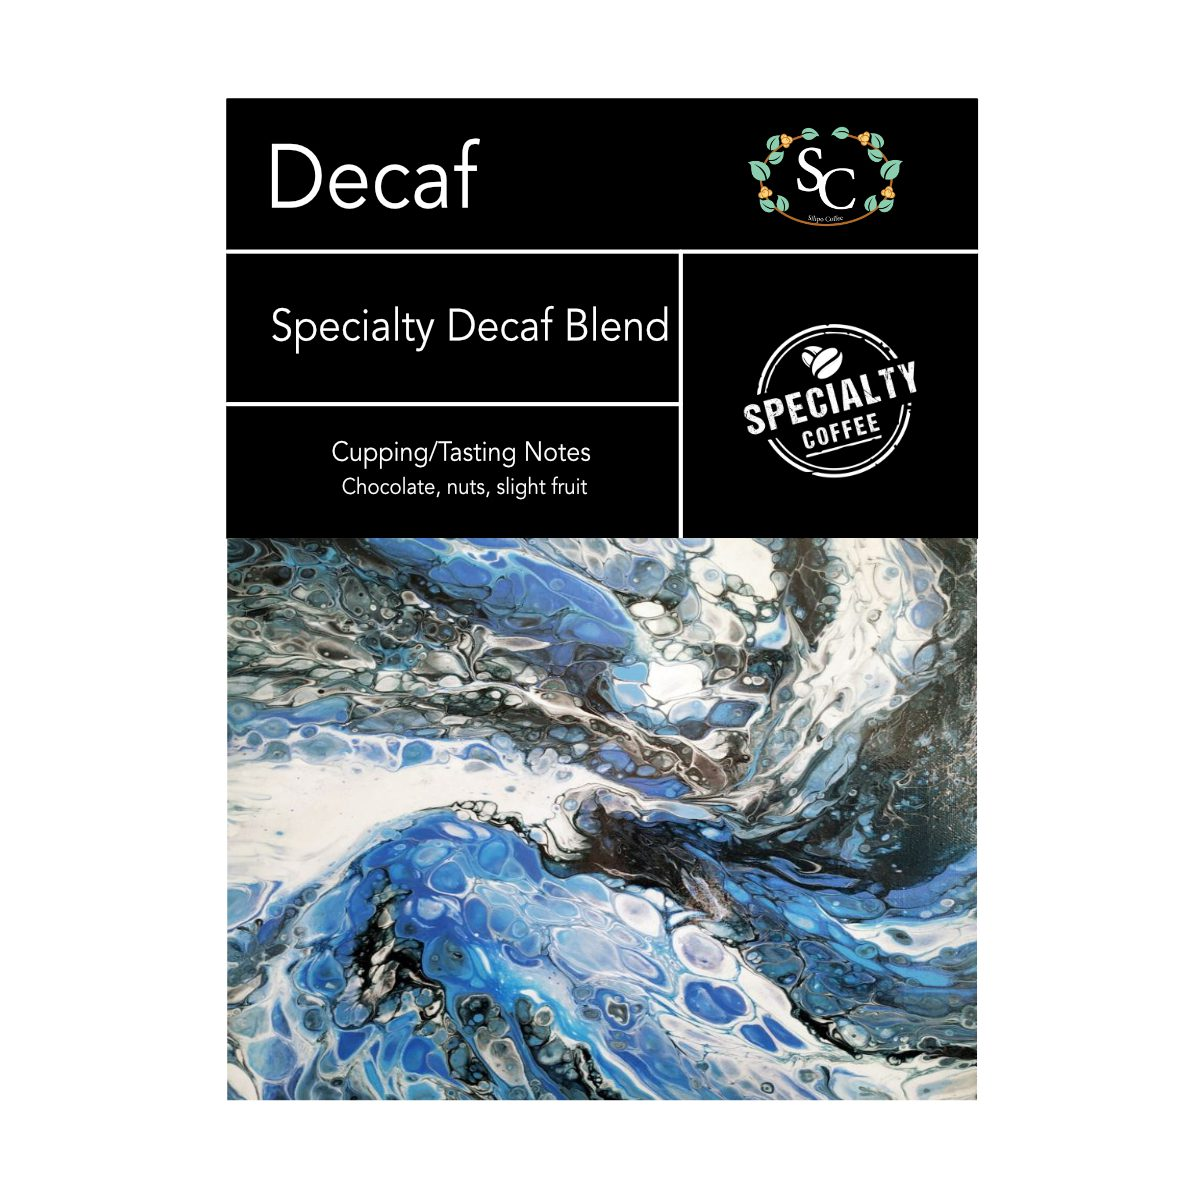 Specialty Decaf blend